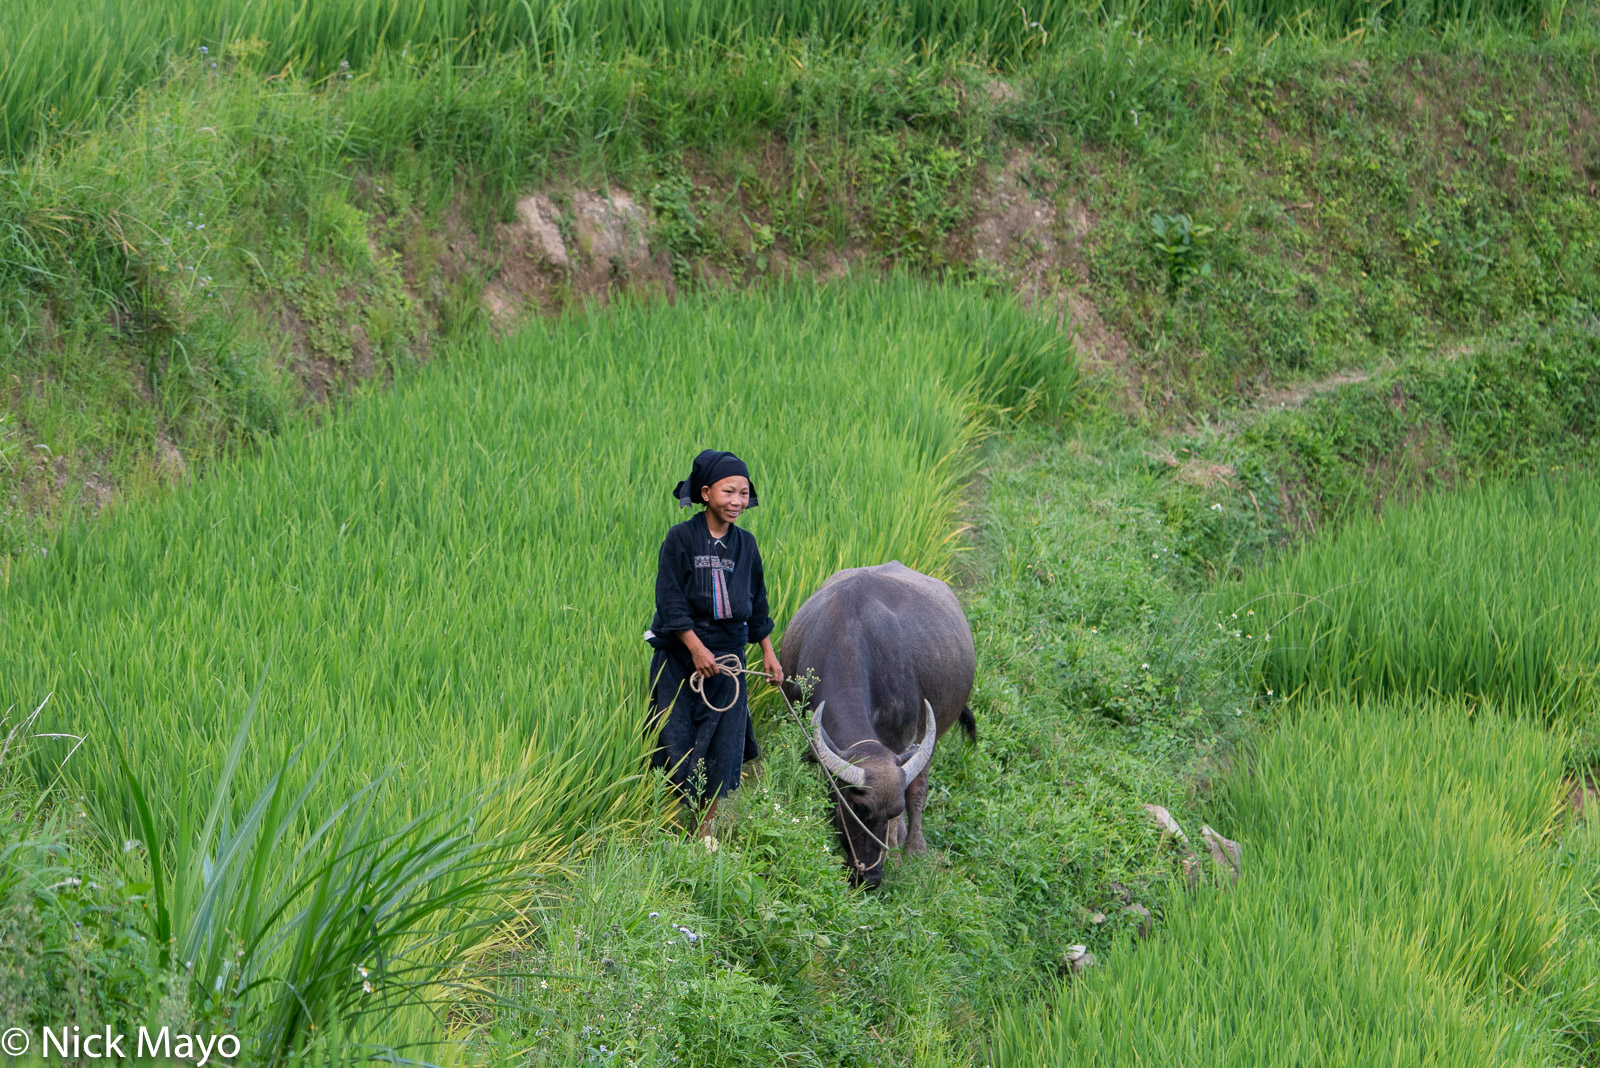 A La Chi woman from Ban Phung with her water buffalo.